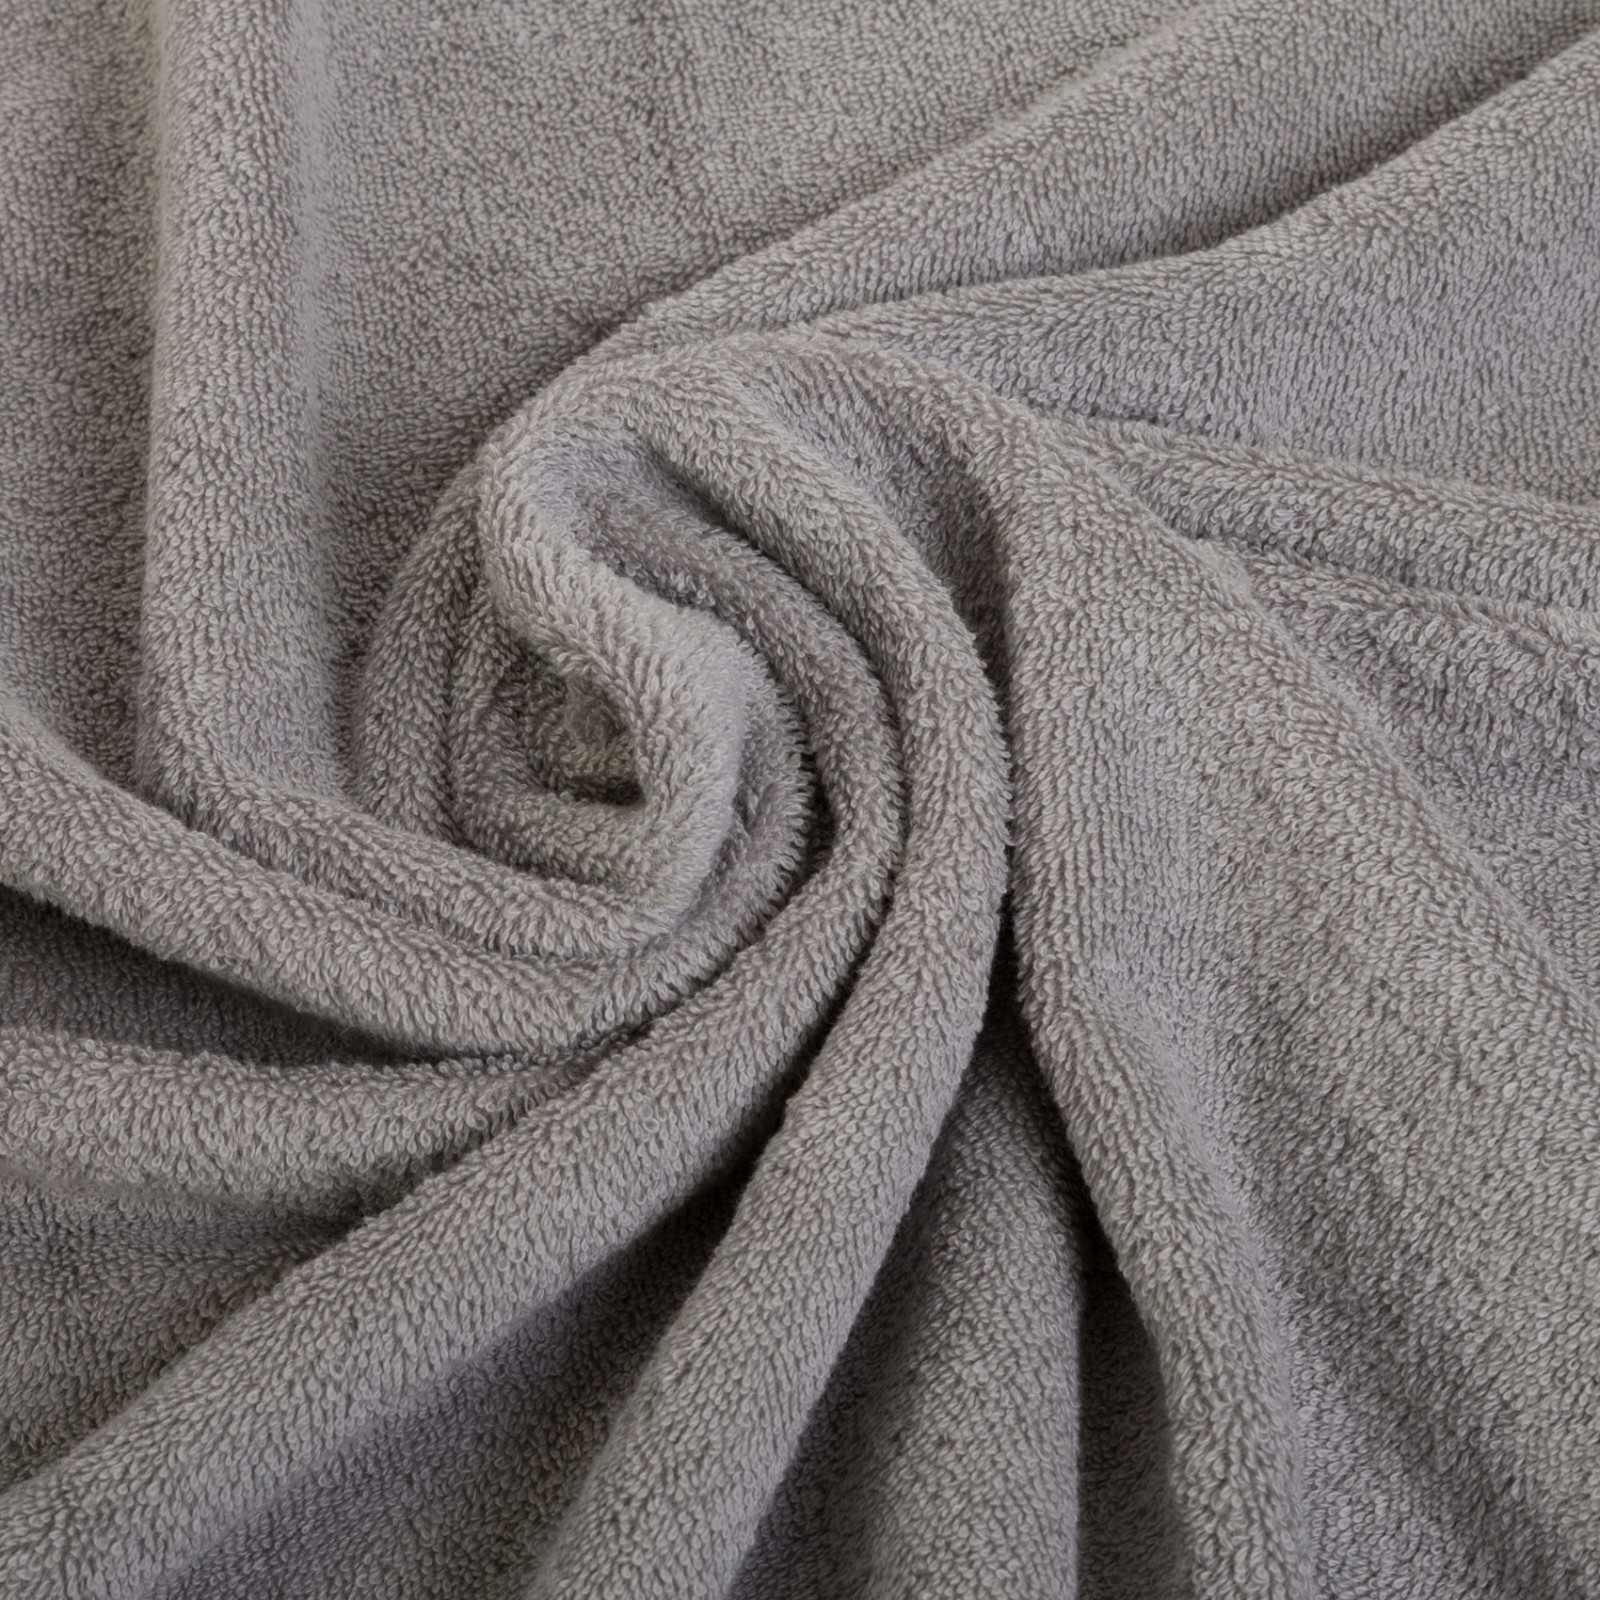 NEW GRAY SUPER LUXURY TURKISH COTTON HAND TOWELS